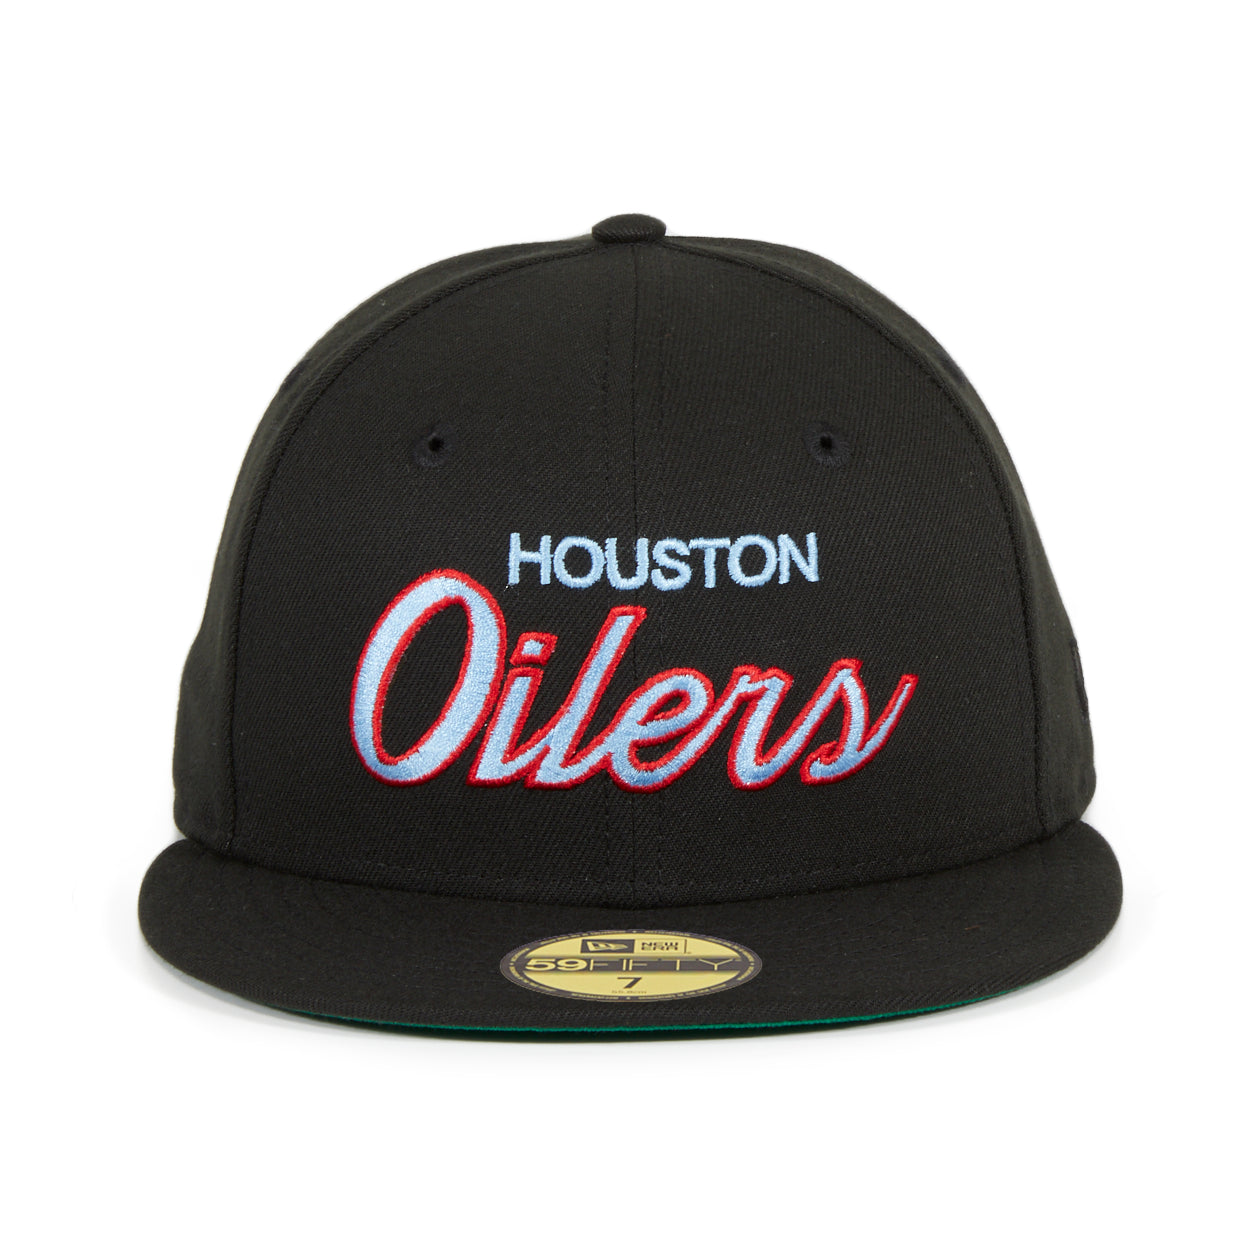 Exclusive New Era 59Fifty Houston Oilers Script Hat - Black